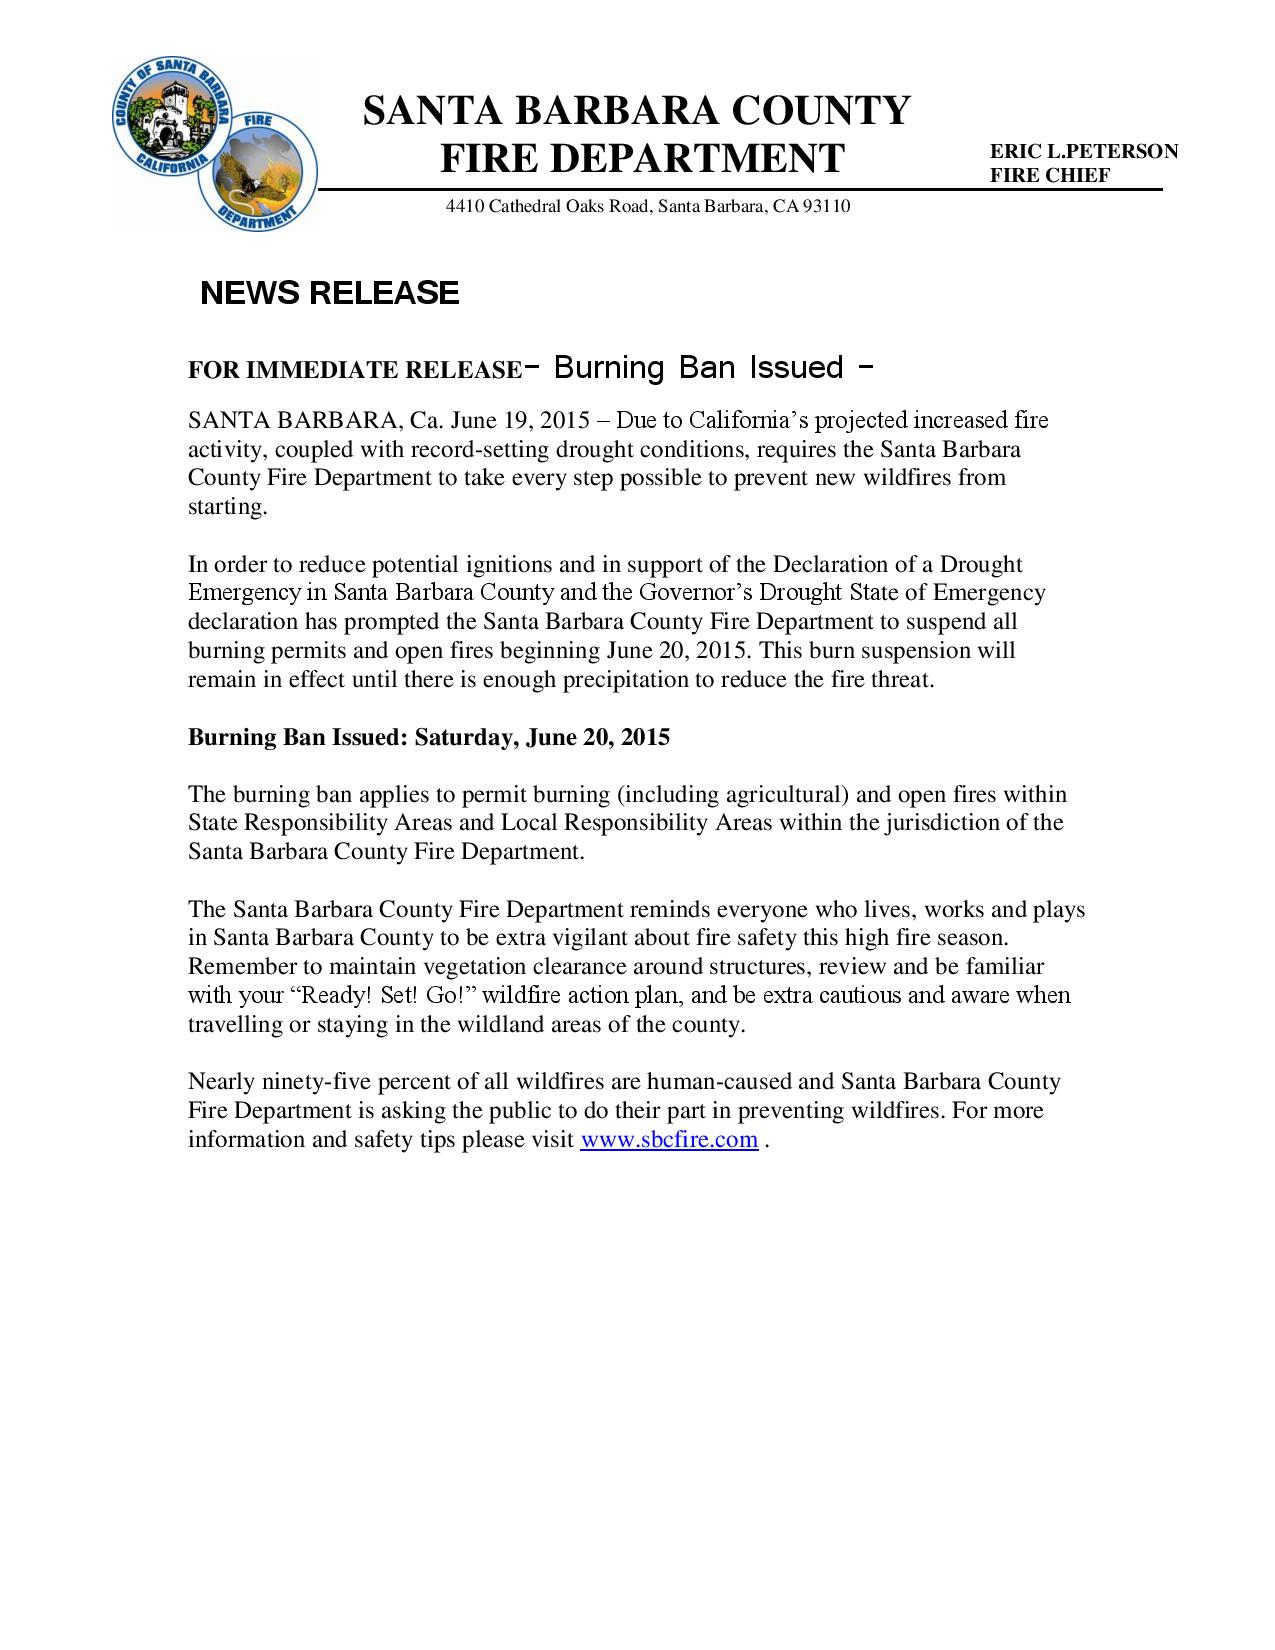 Burning Ban Issued-pg1